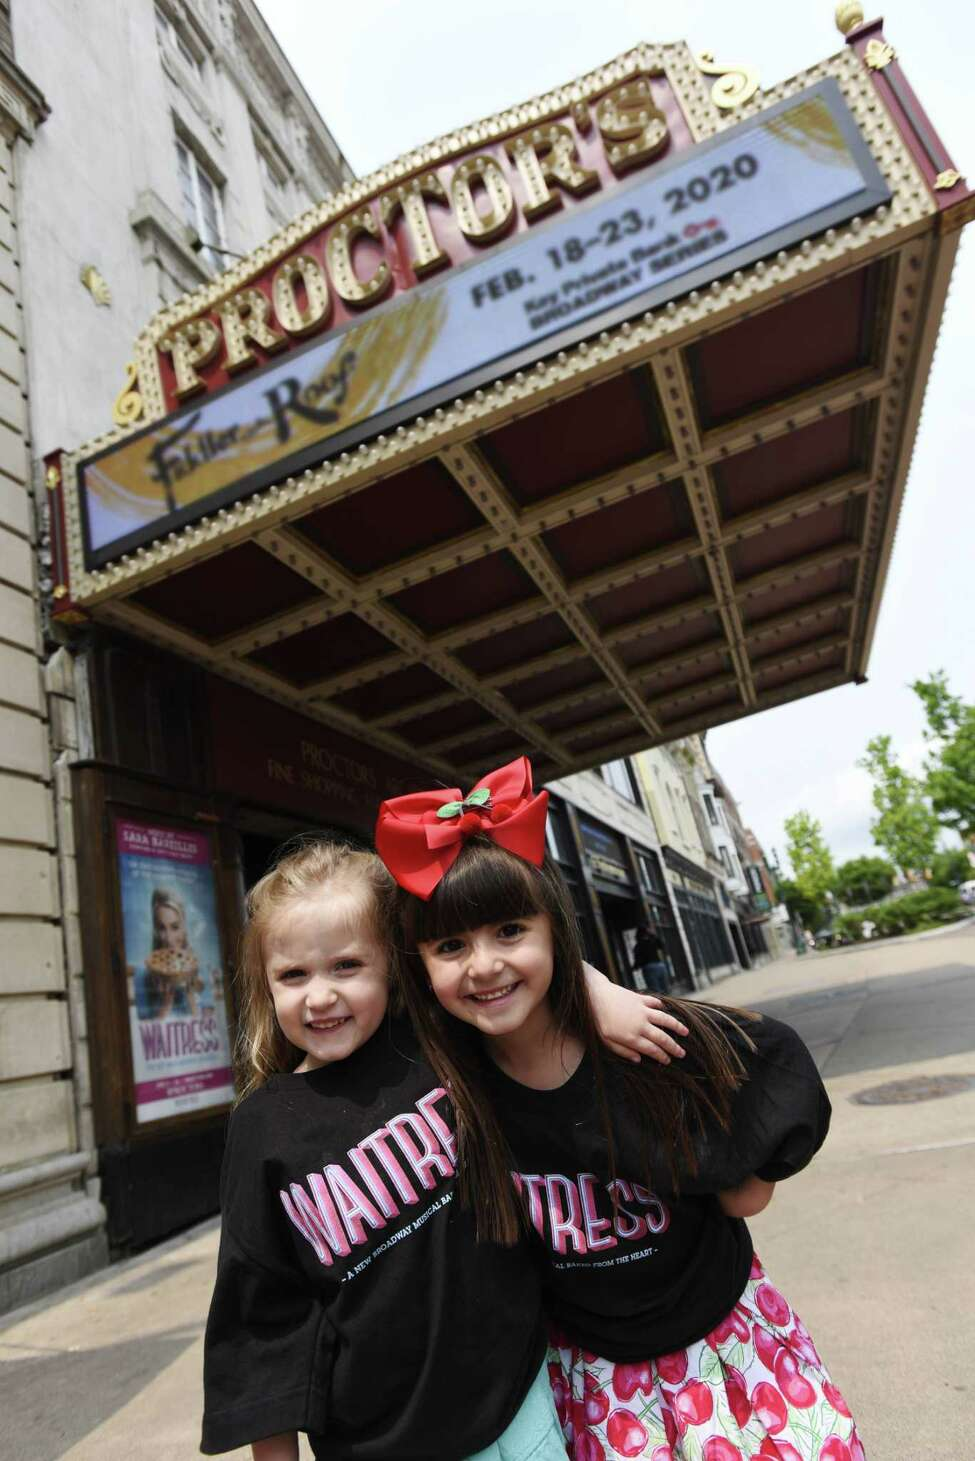 Genevieve Carmichael of Amsterdam, left, and Viviana DiMezza of Perth will play Lulu, the daughter of the title character in the musical